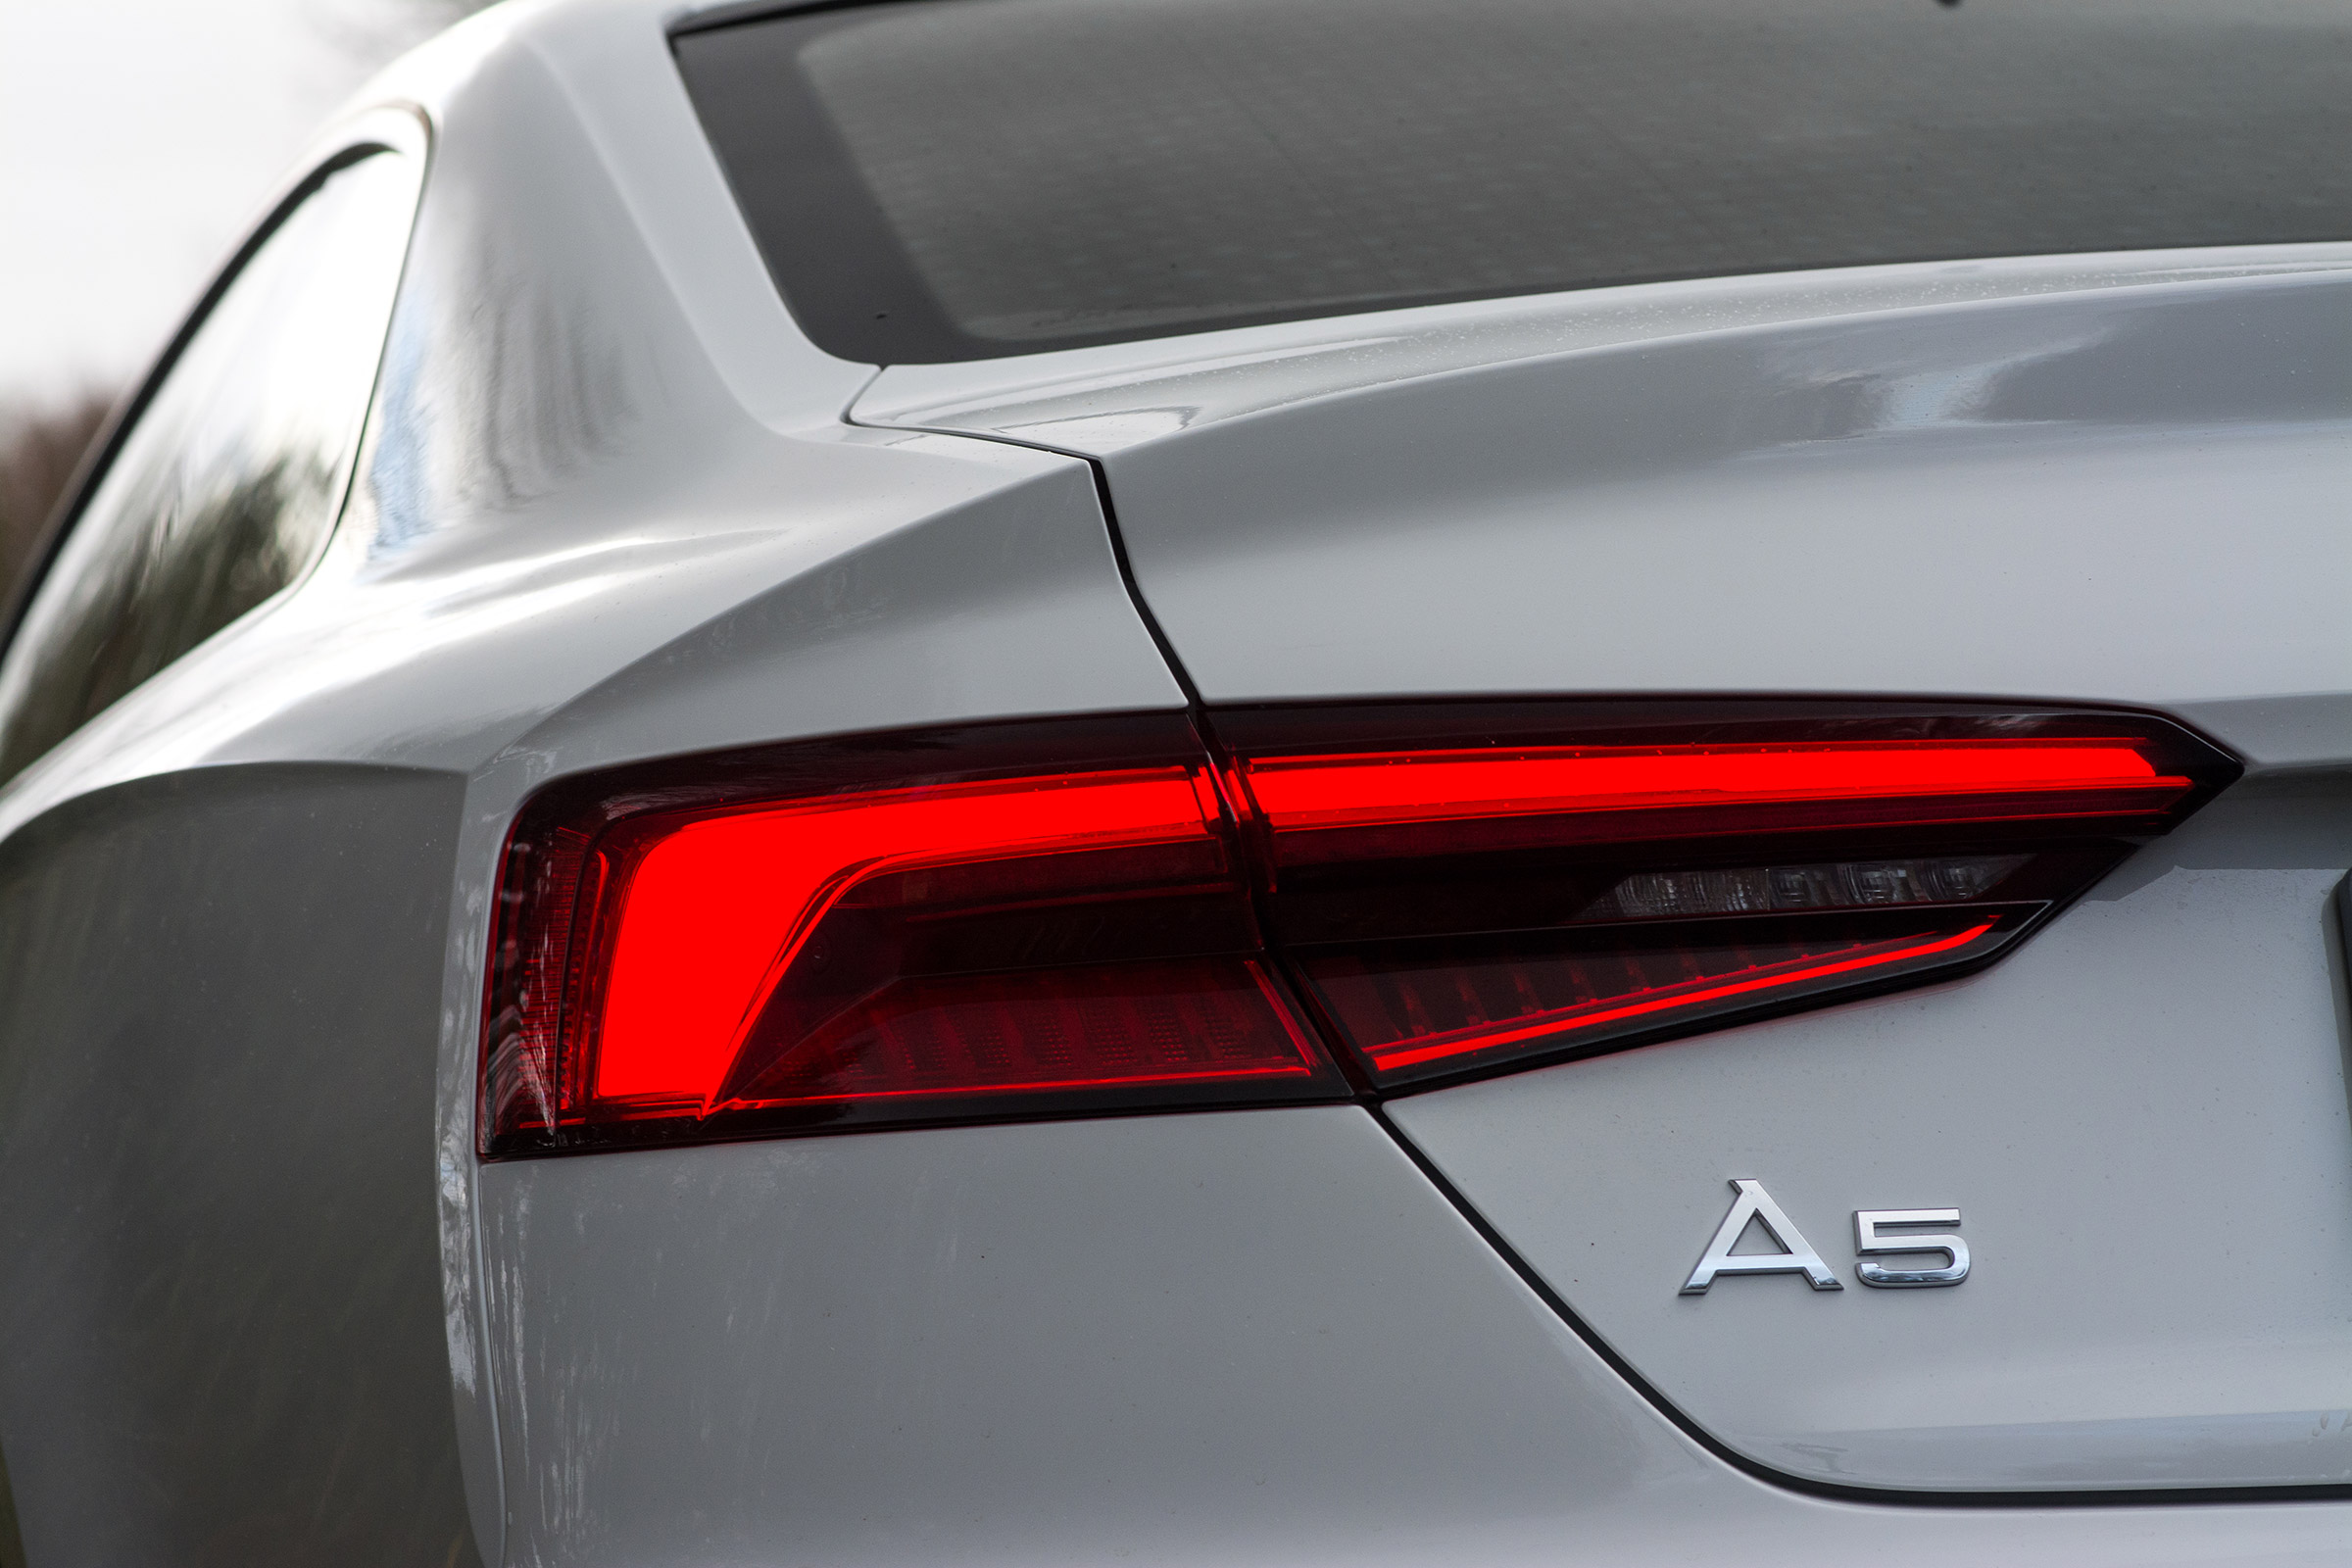 2017 Audi A5 Coupe Exterior View Taillight (Photo 5 of 21)